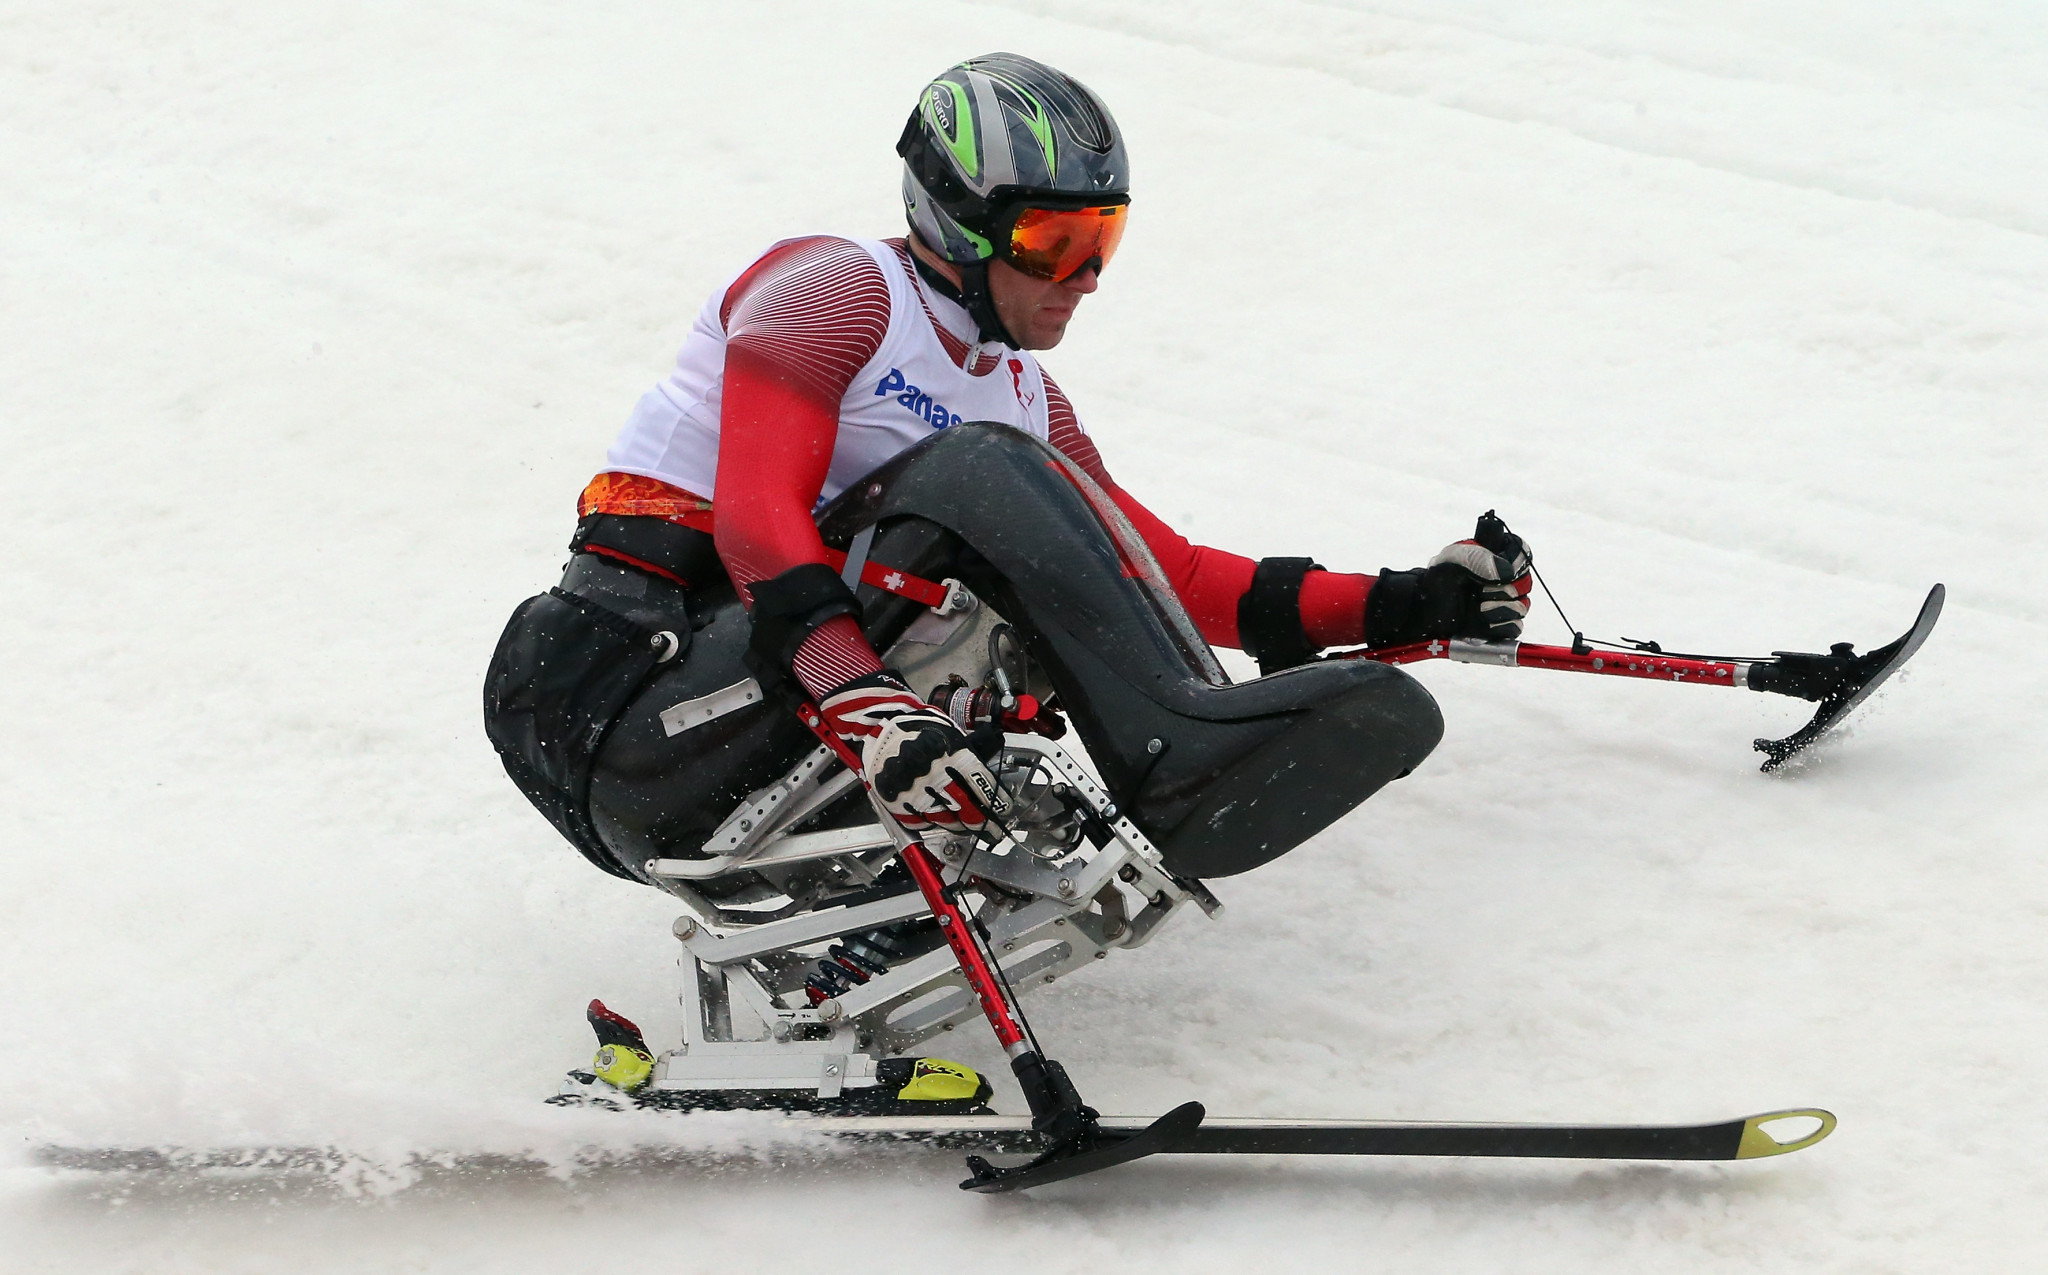 World Para Alpine Skiing Europa Cup winners crowned after final day cancelled